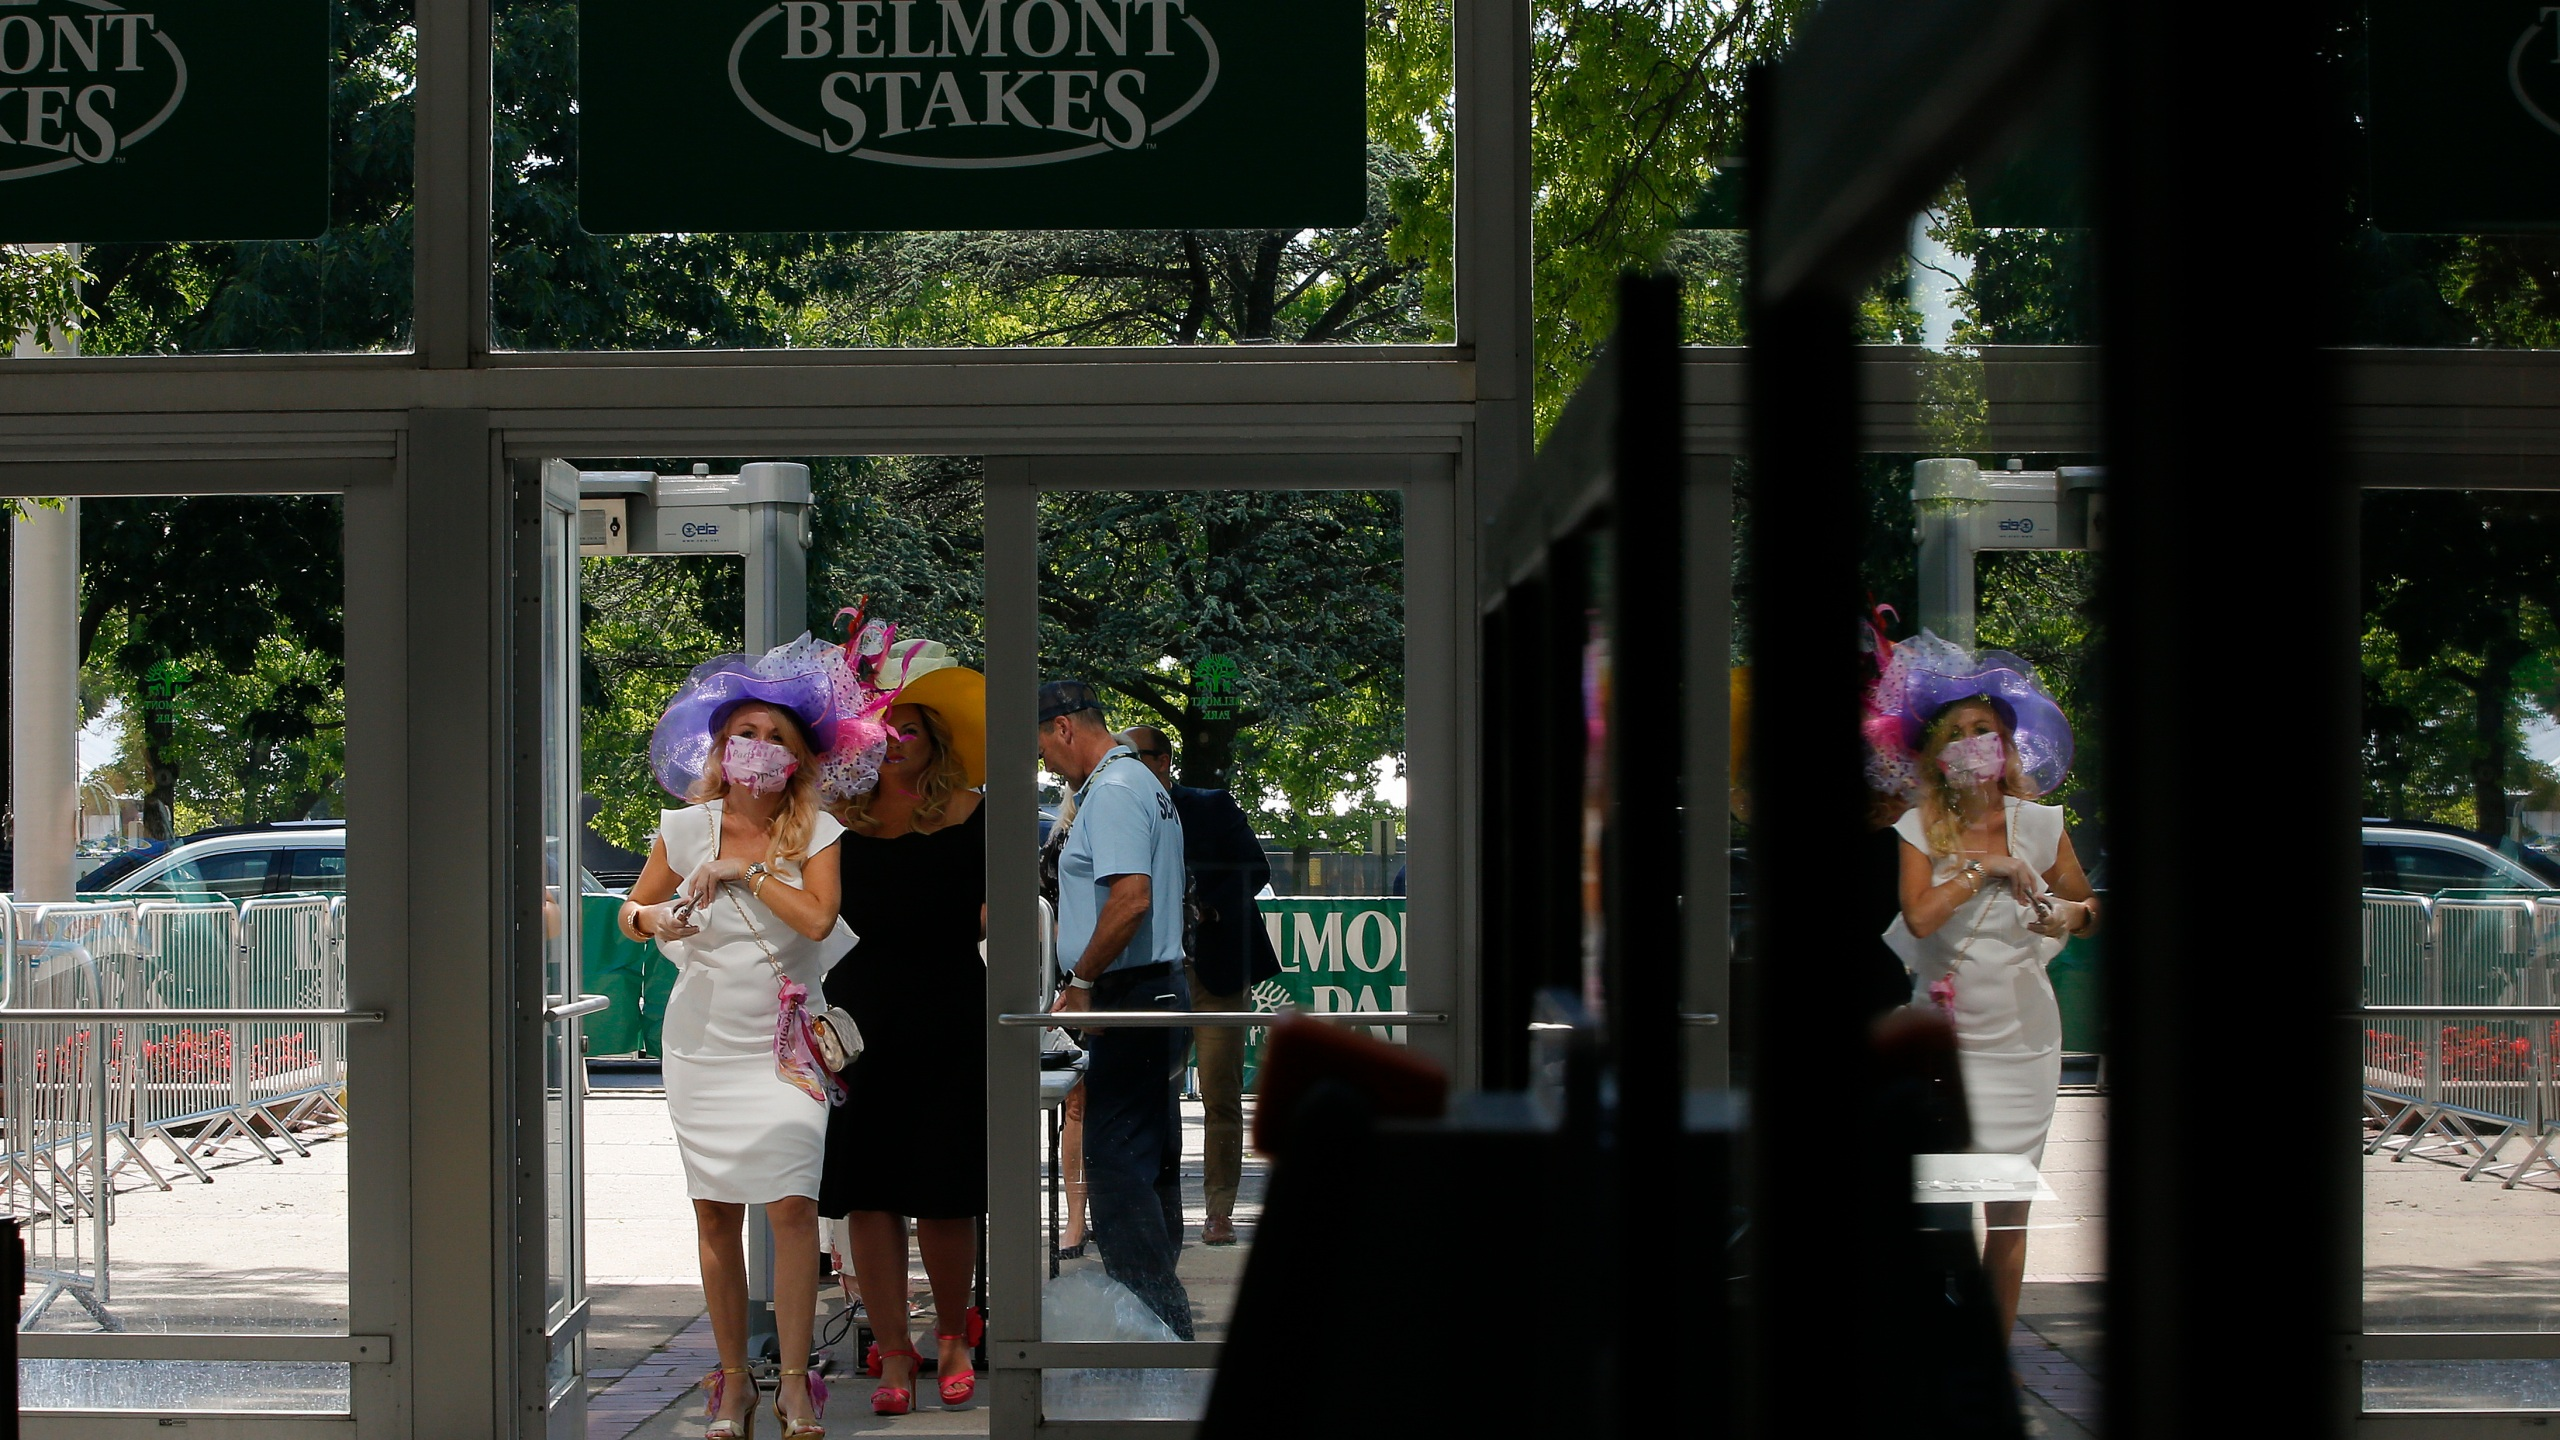 fans arrive at belmont stakes horse race on long island